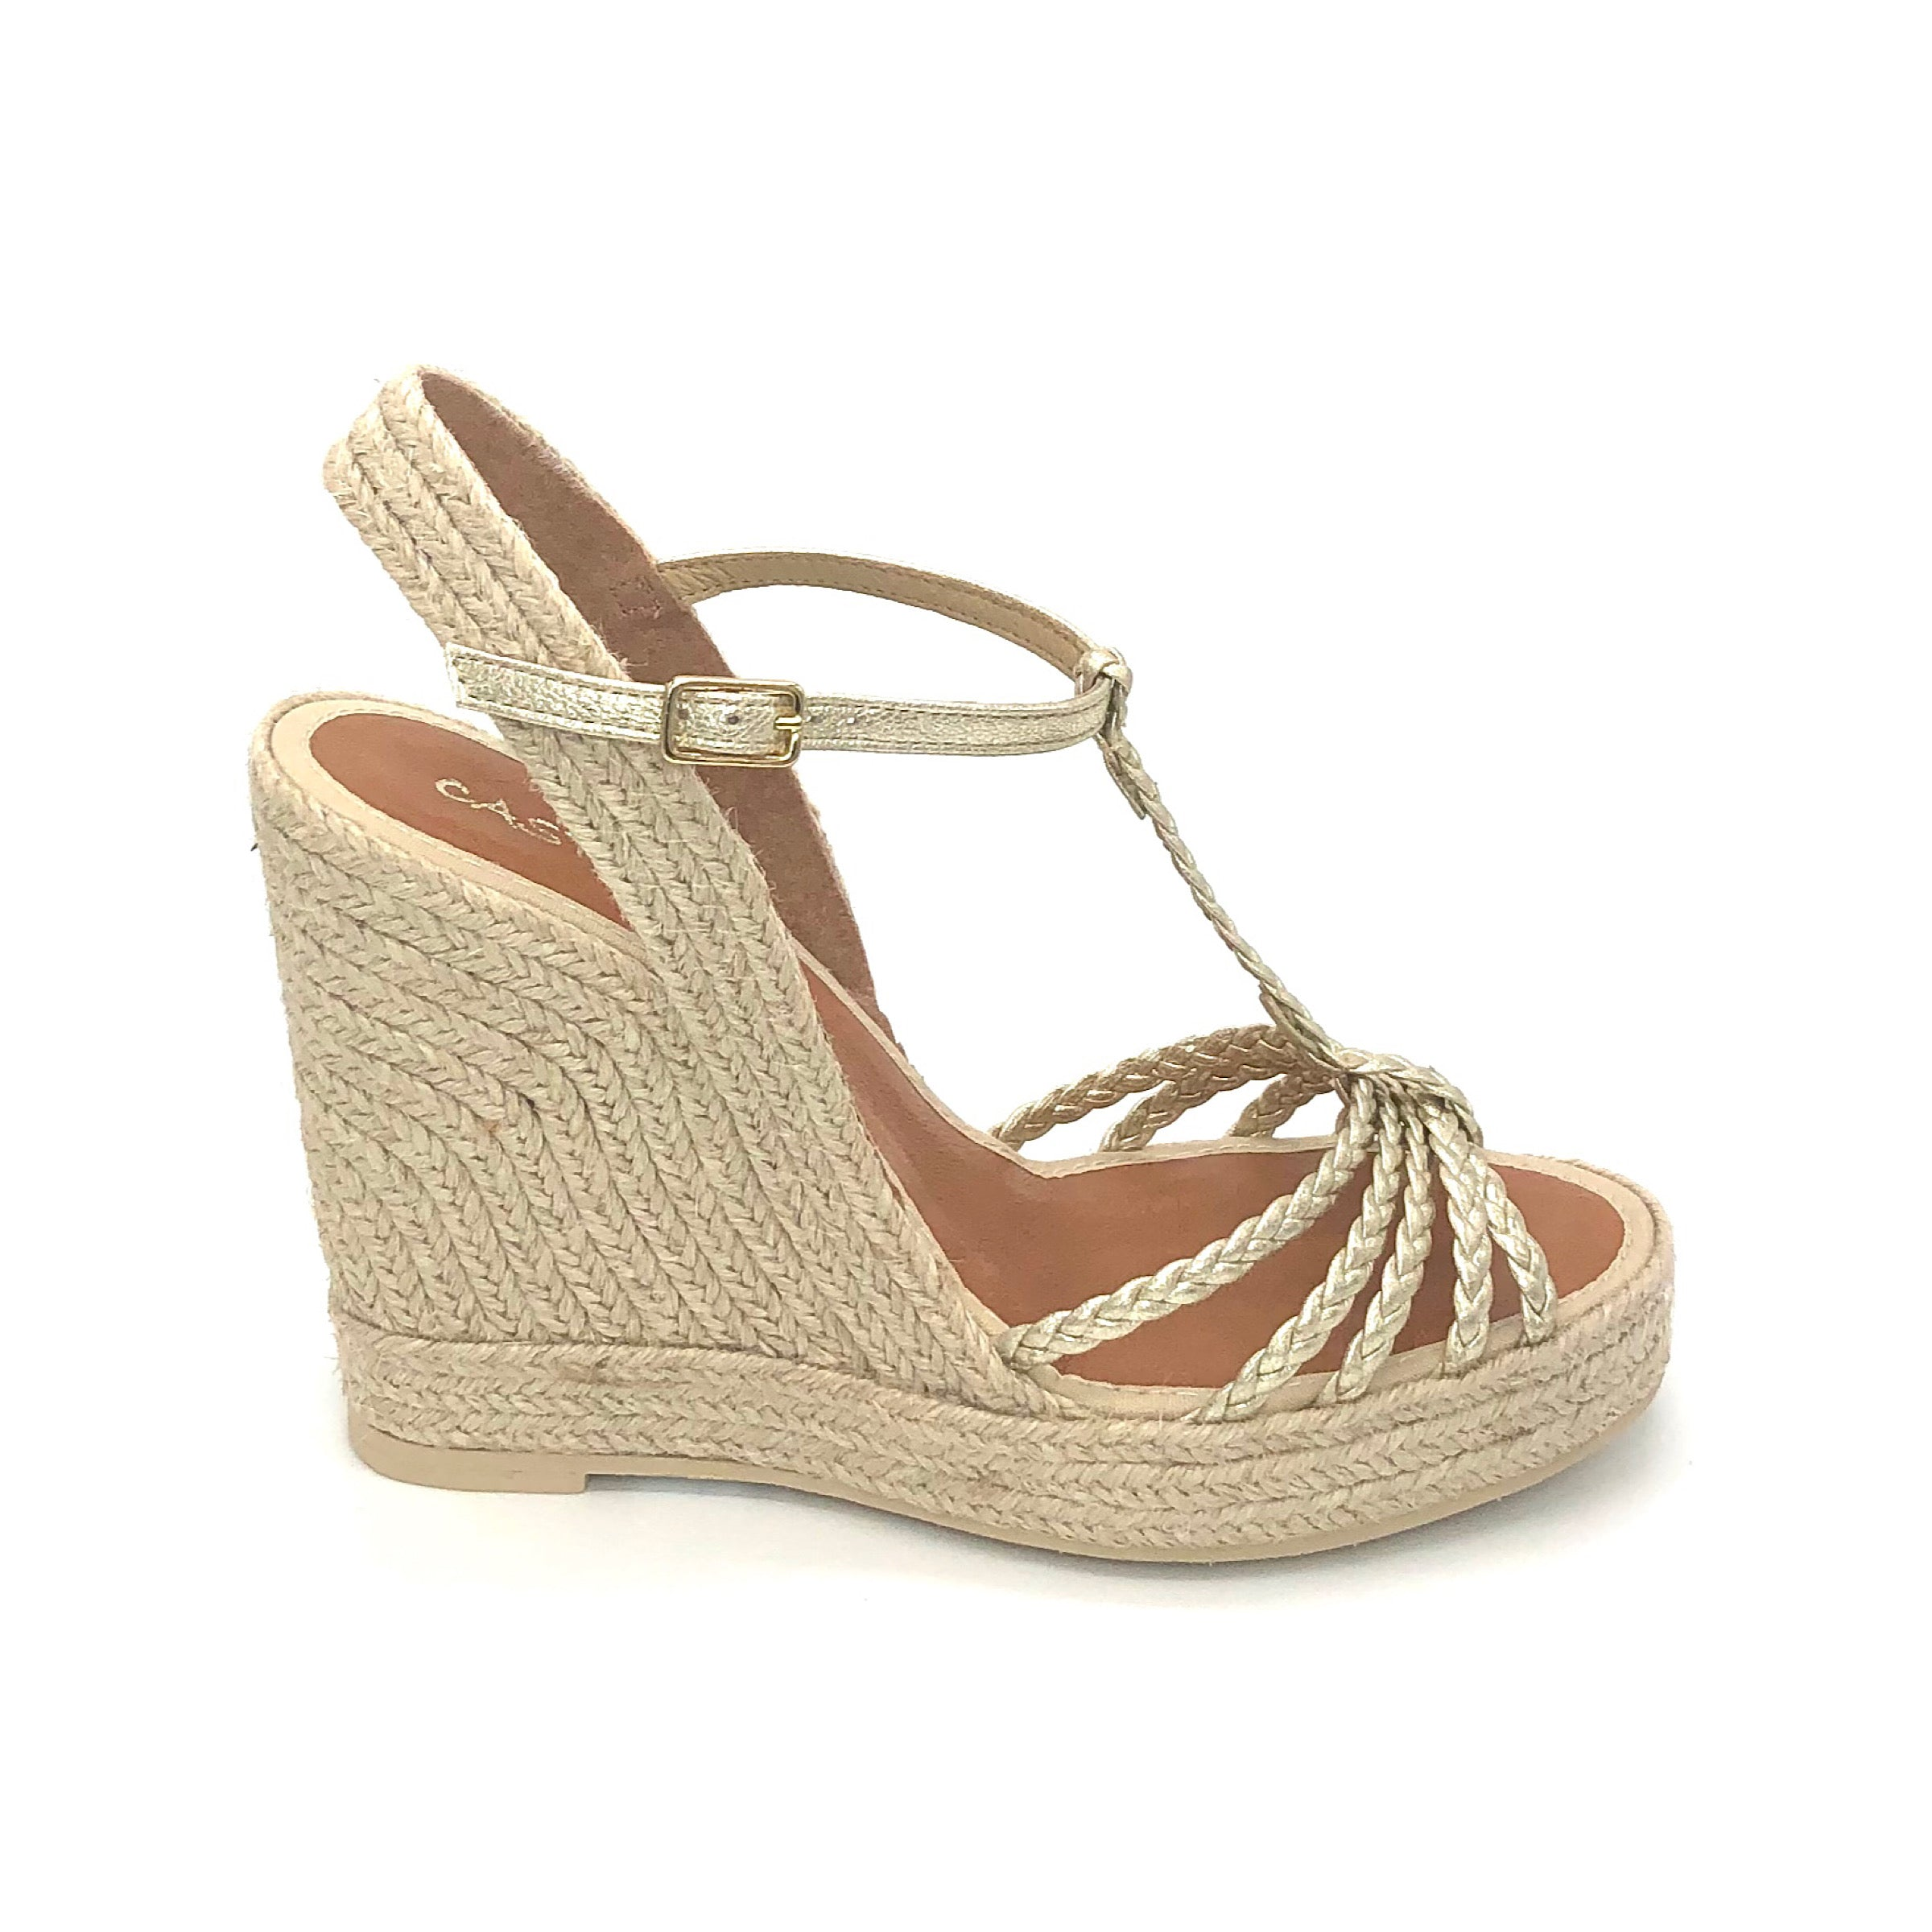 The Braided T-Strap Espadrille in Platino Metallic. This stunning multi braid t-strap sandal on high platform espadrille is a show stopper! The platino metallic thin straps instantly add hint of elegance to any outfit.